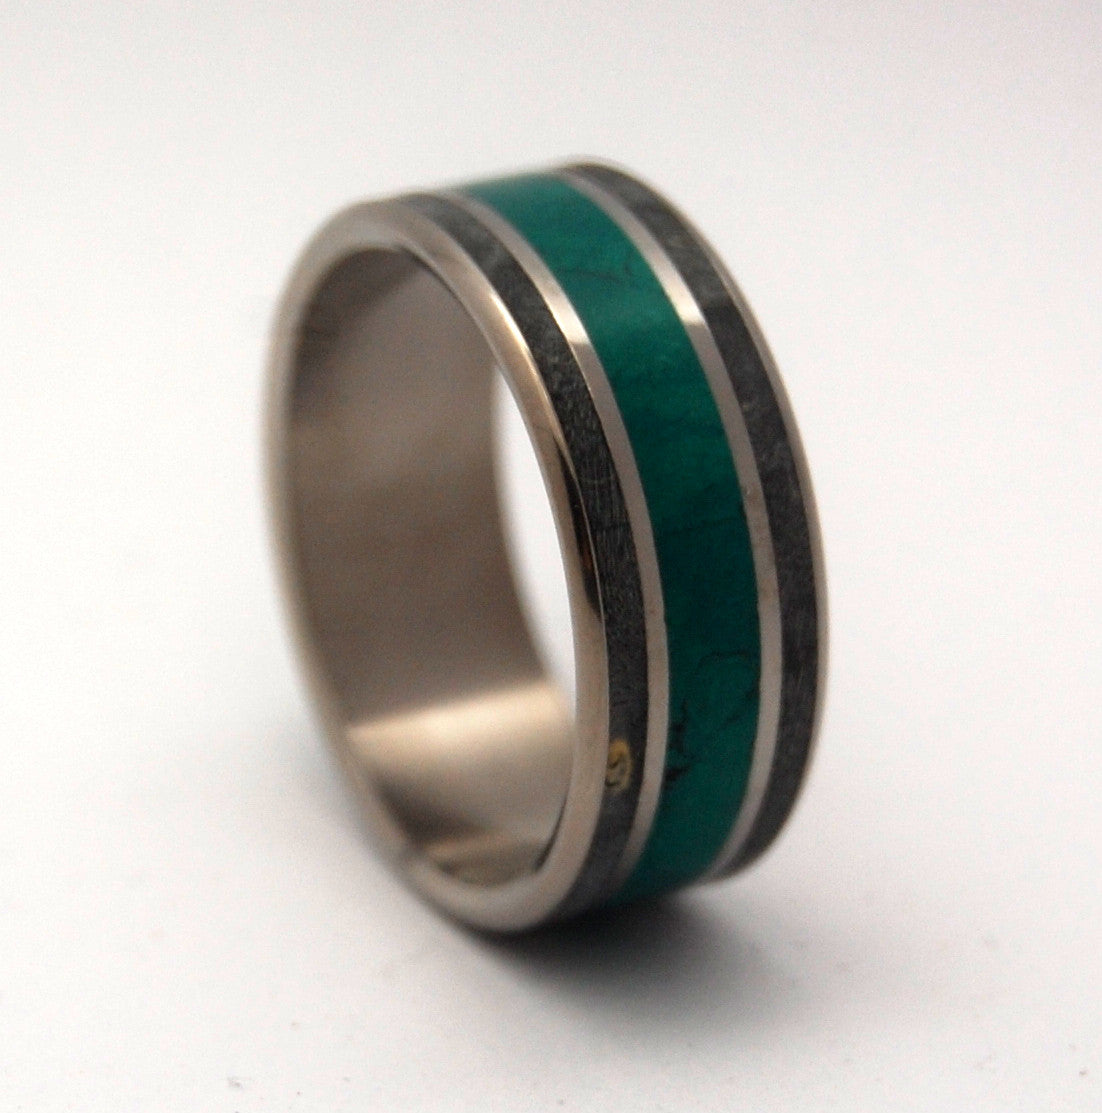 MORNING SONG | Imperial Jade & Black Box Elder Wood Titanium Wedding Rings - Minter and Richter Designs